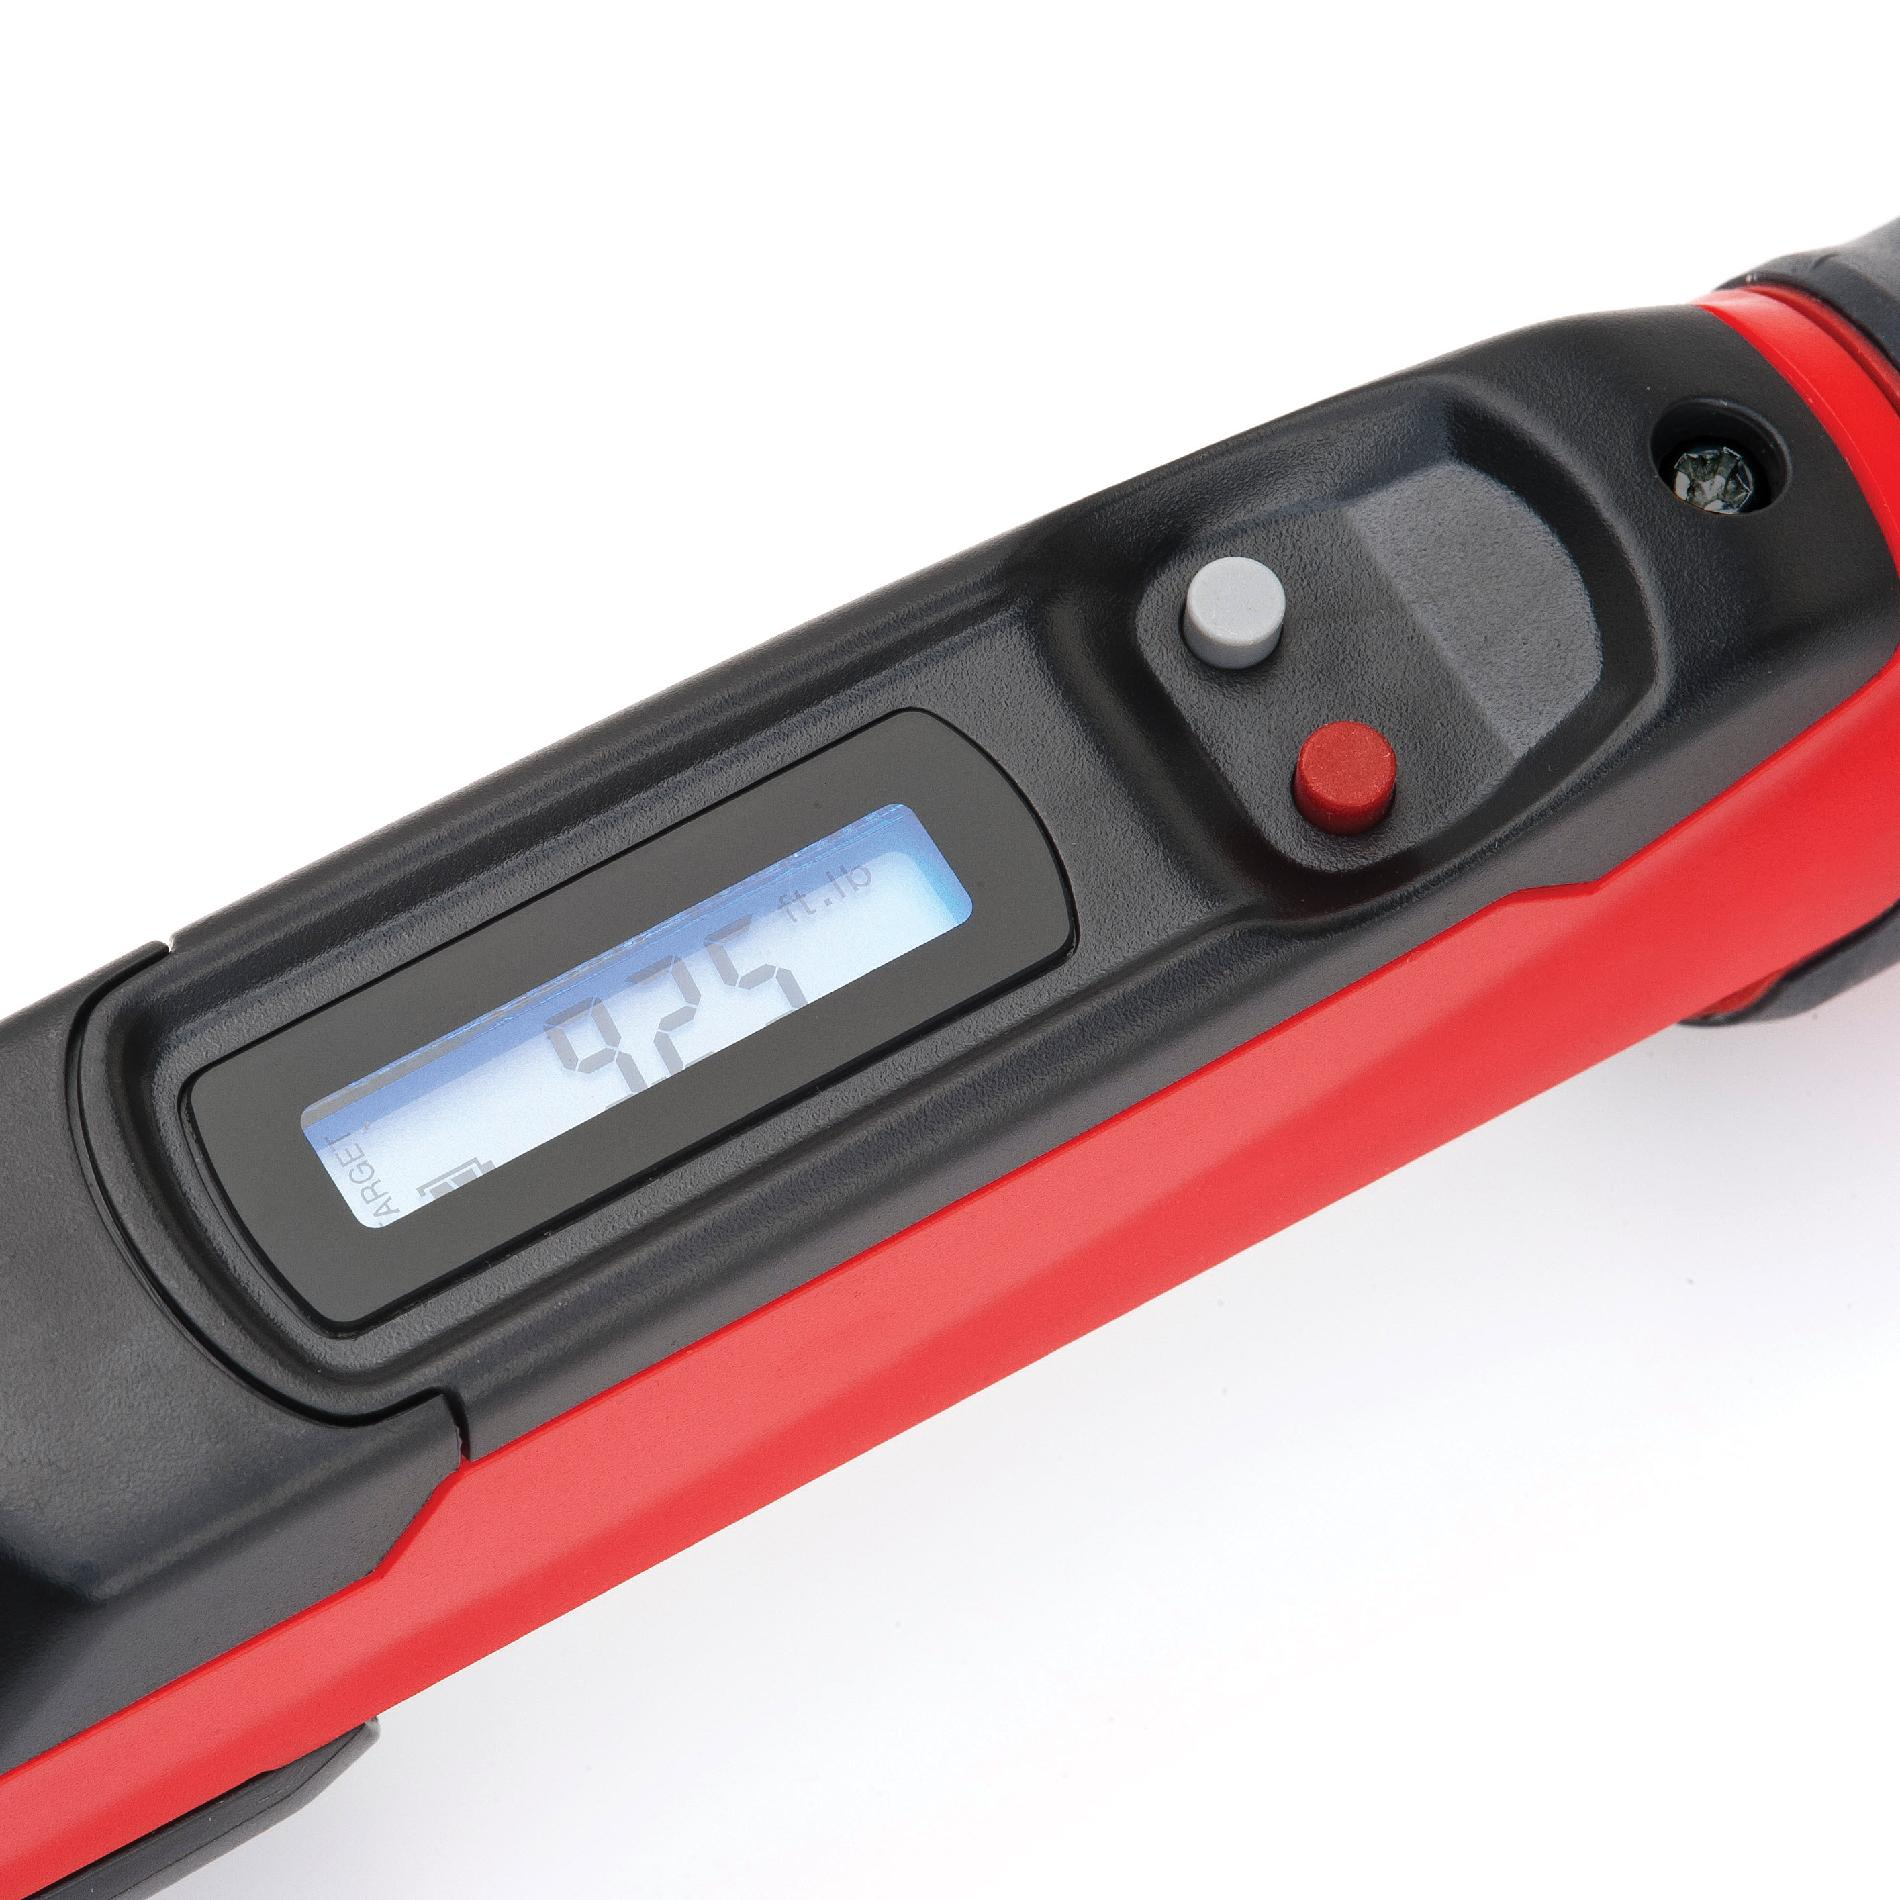 Craftsman 3/8-in. Dr. Digi-Click Torque Wrench, 5-80 ft. lbs.